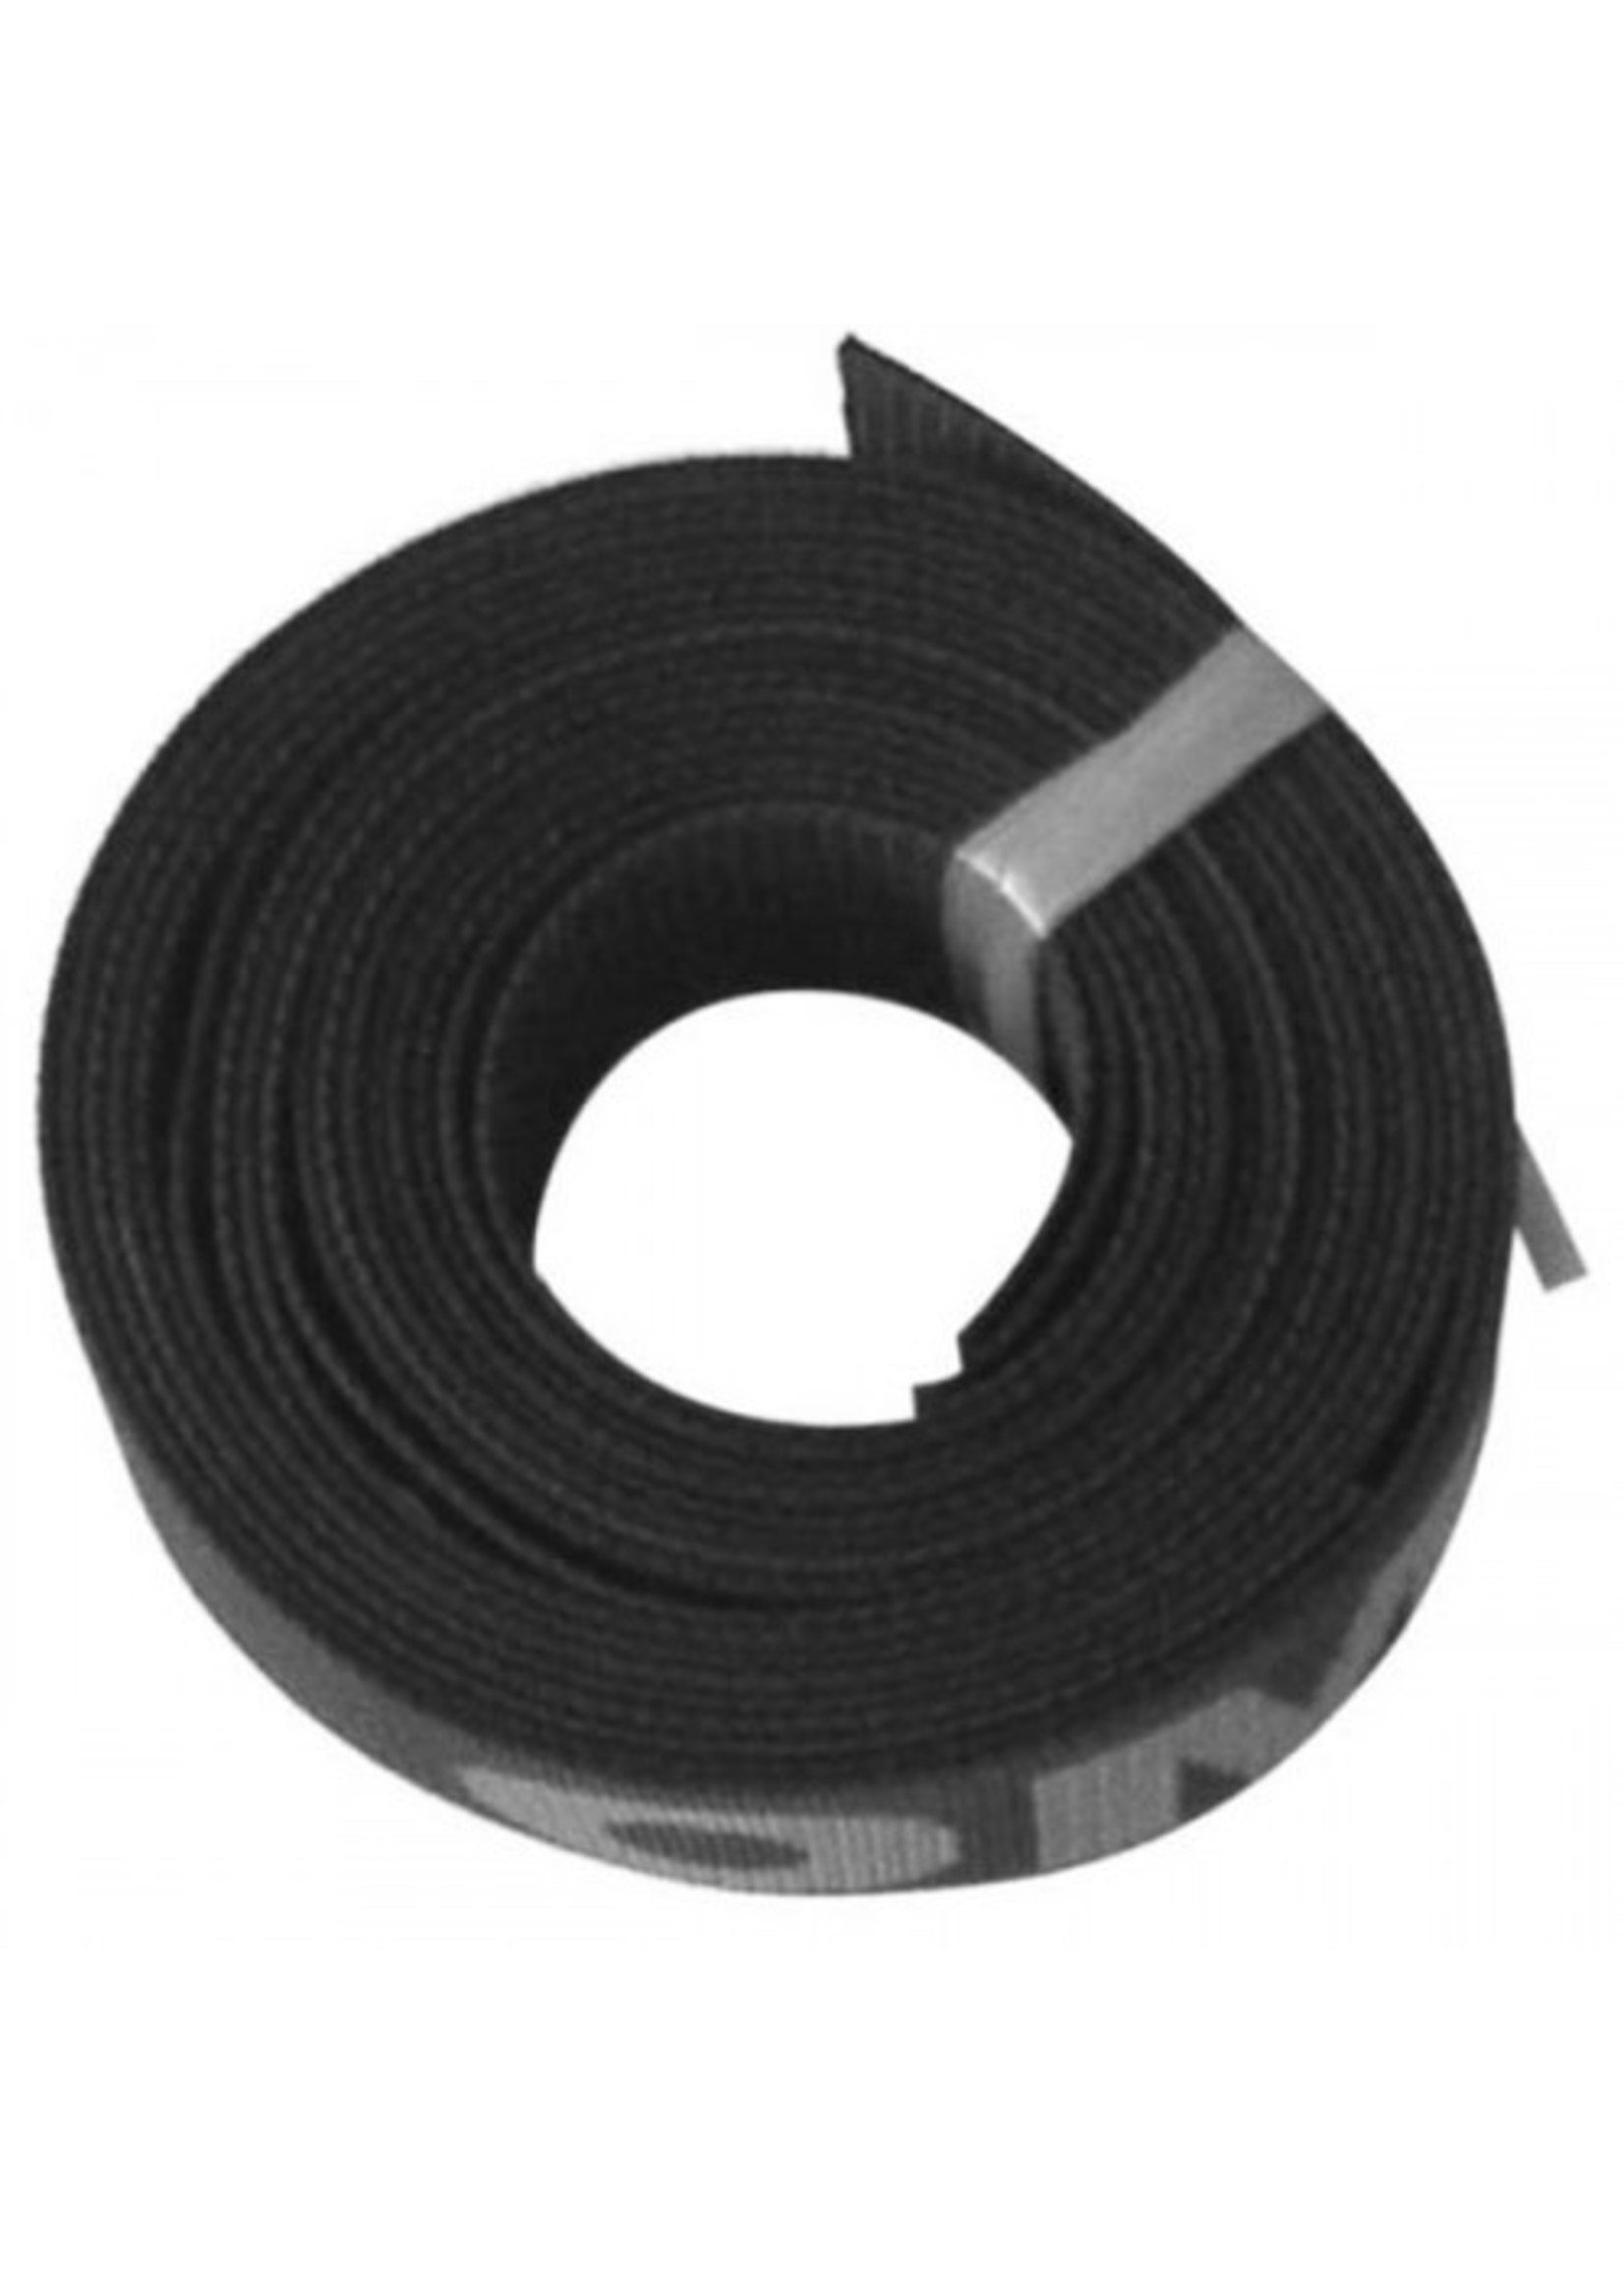 OMS OMS Webbing (black / grey) Replacement for harness, without hardware and crotch-strap